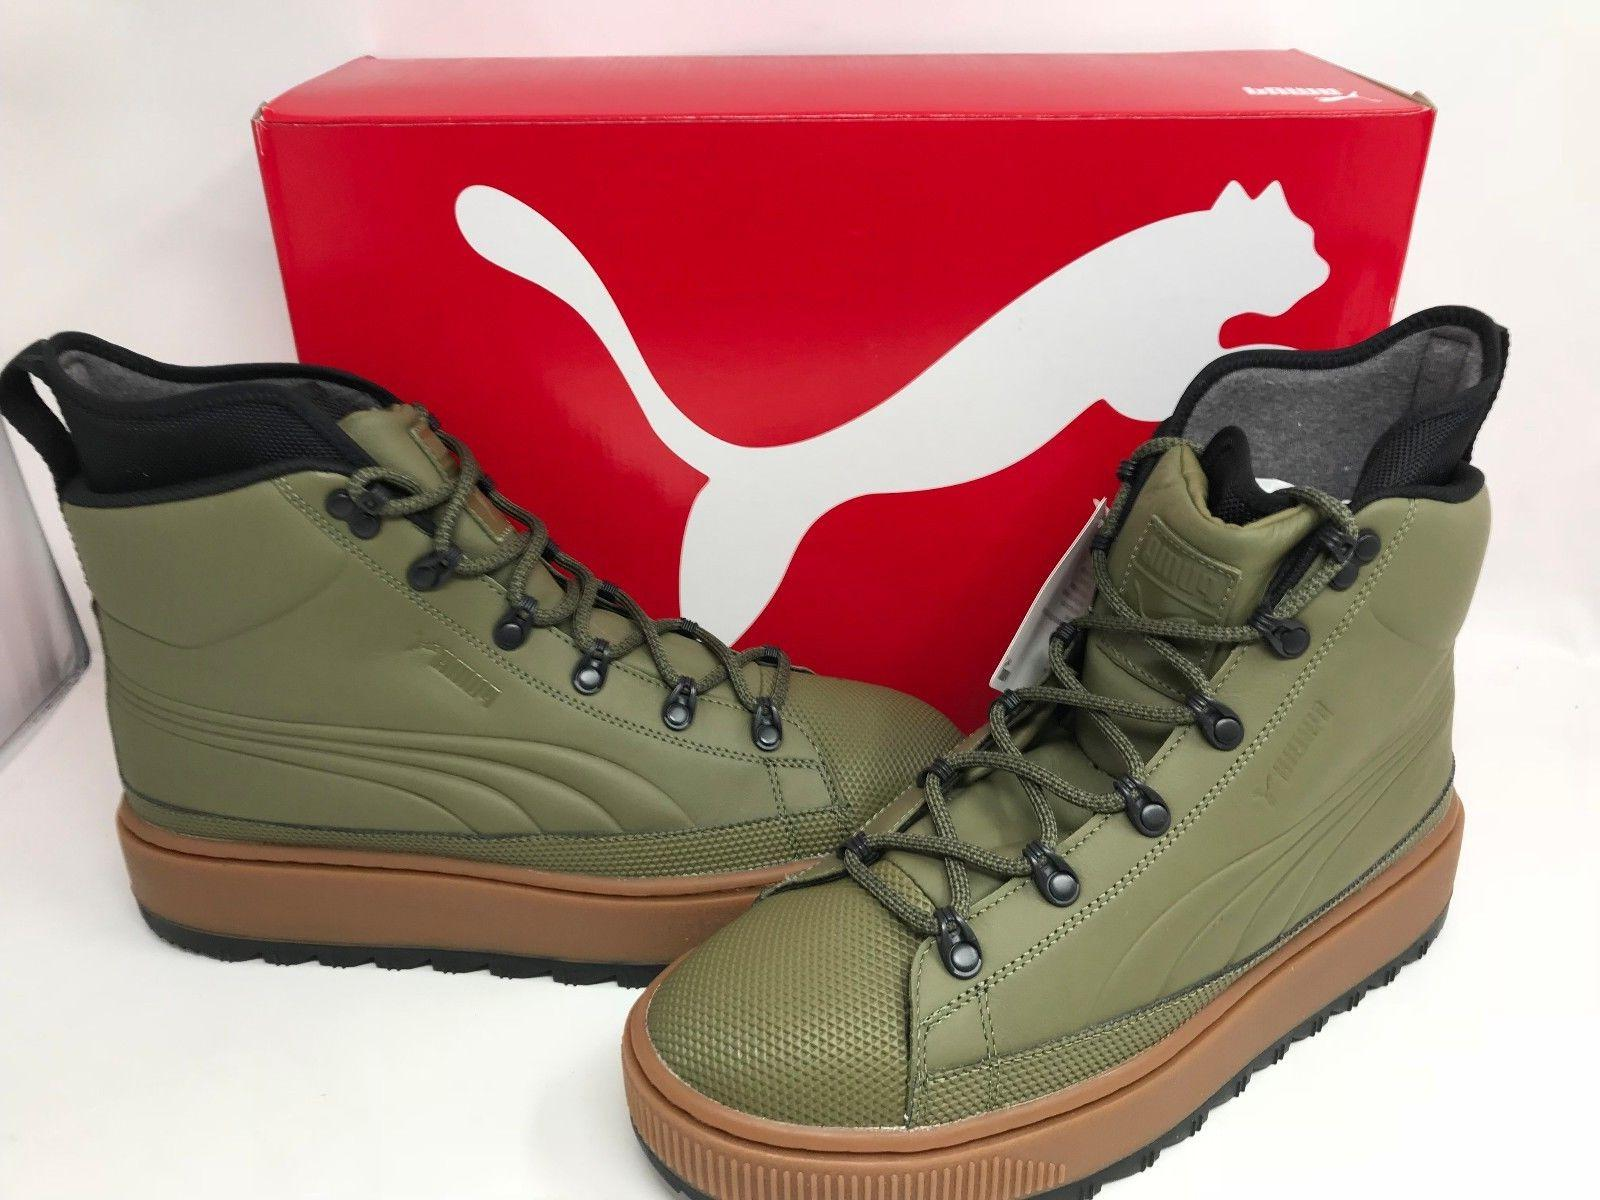 NEW! Puma Men's The Ren Boot Olive/Black #36336603 Z28 z